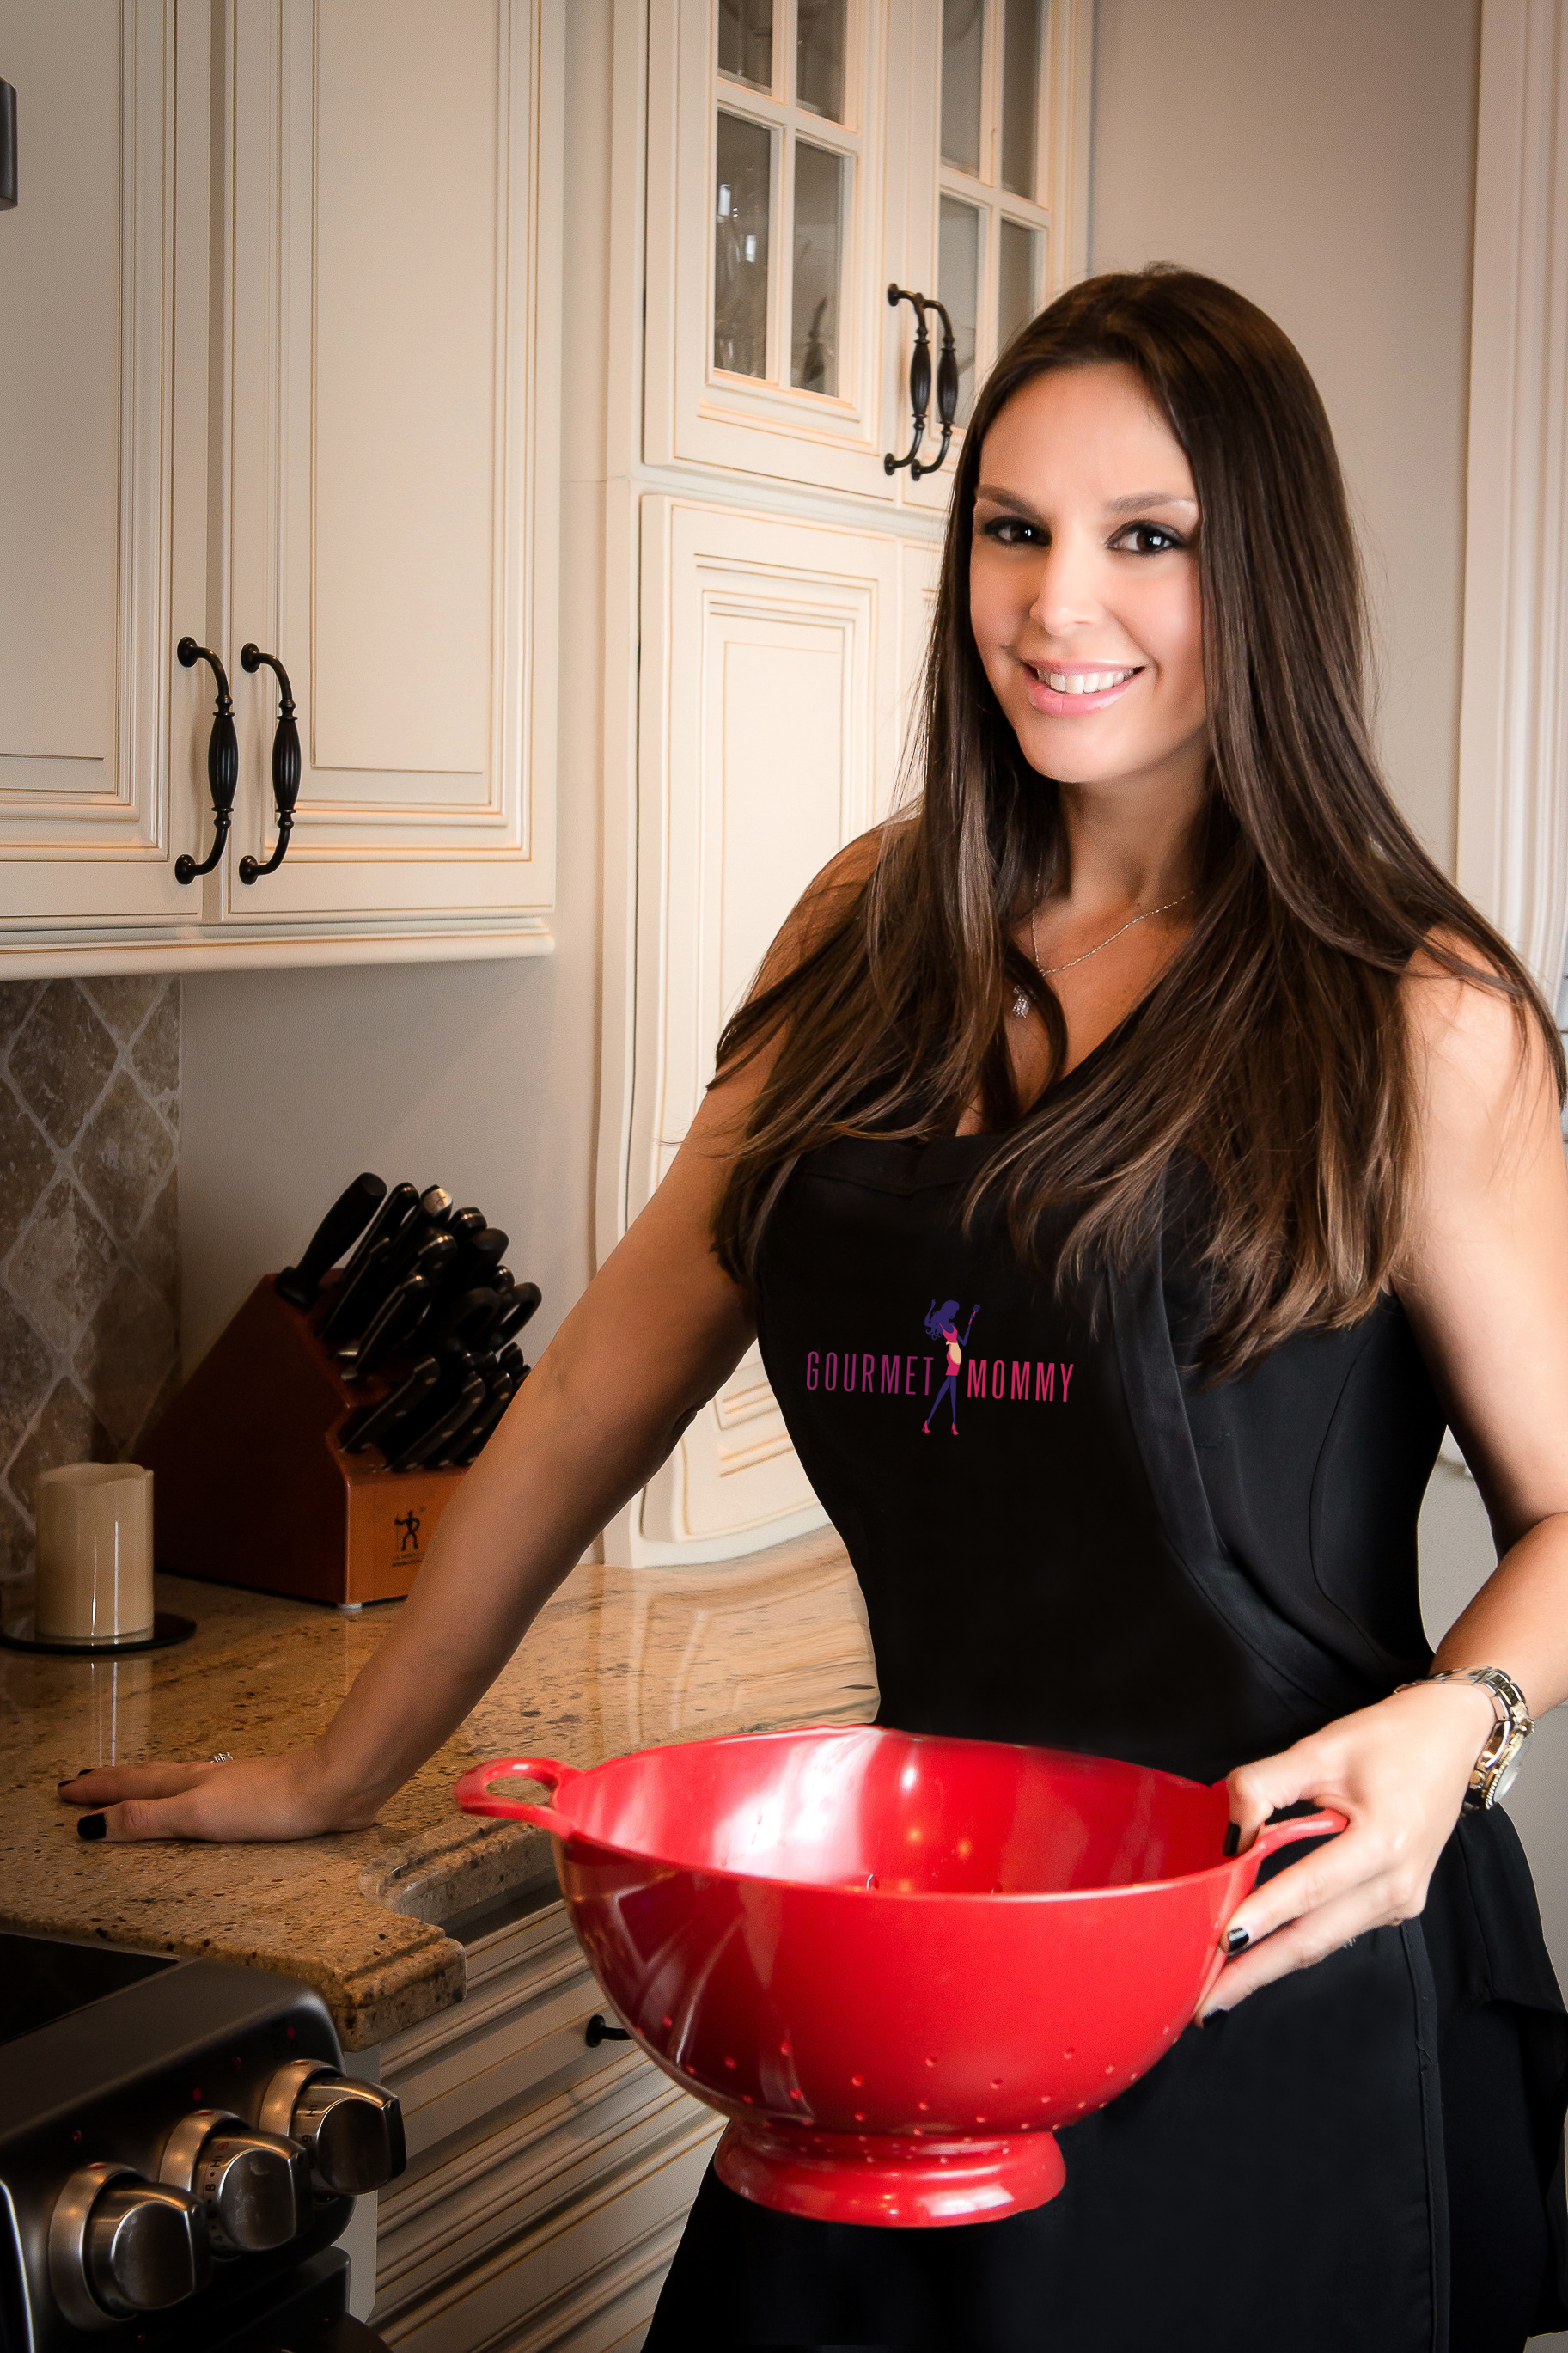 The Gourmet Mommy